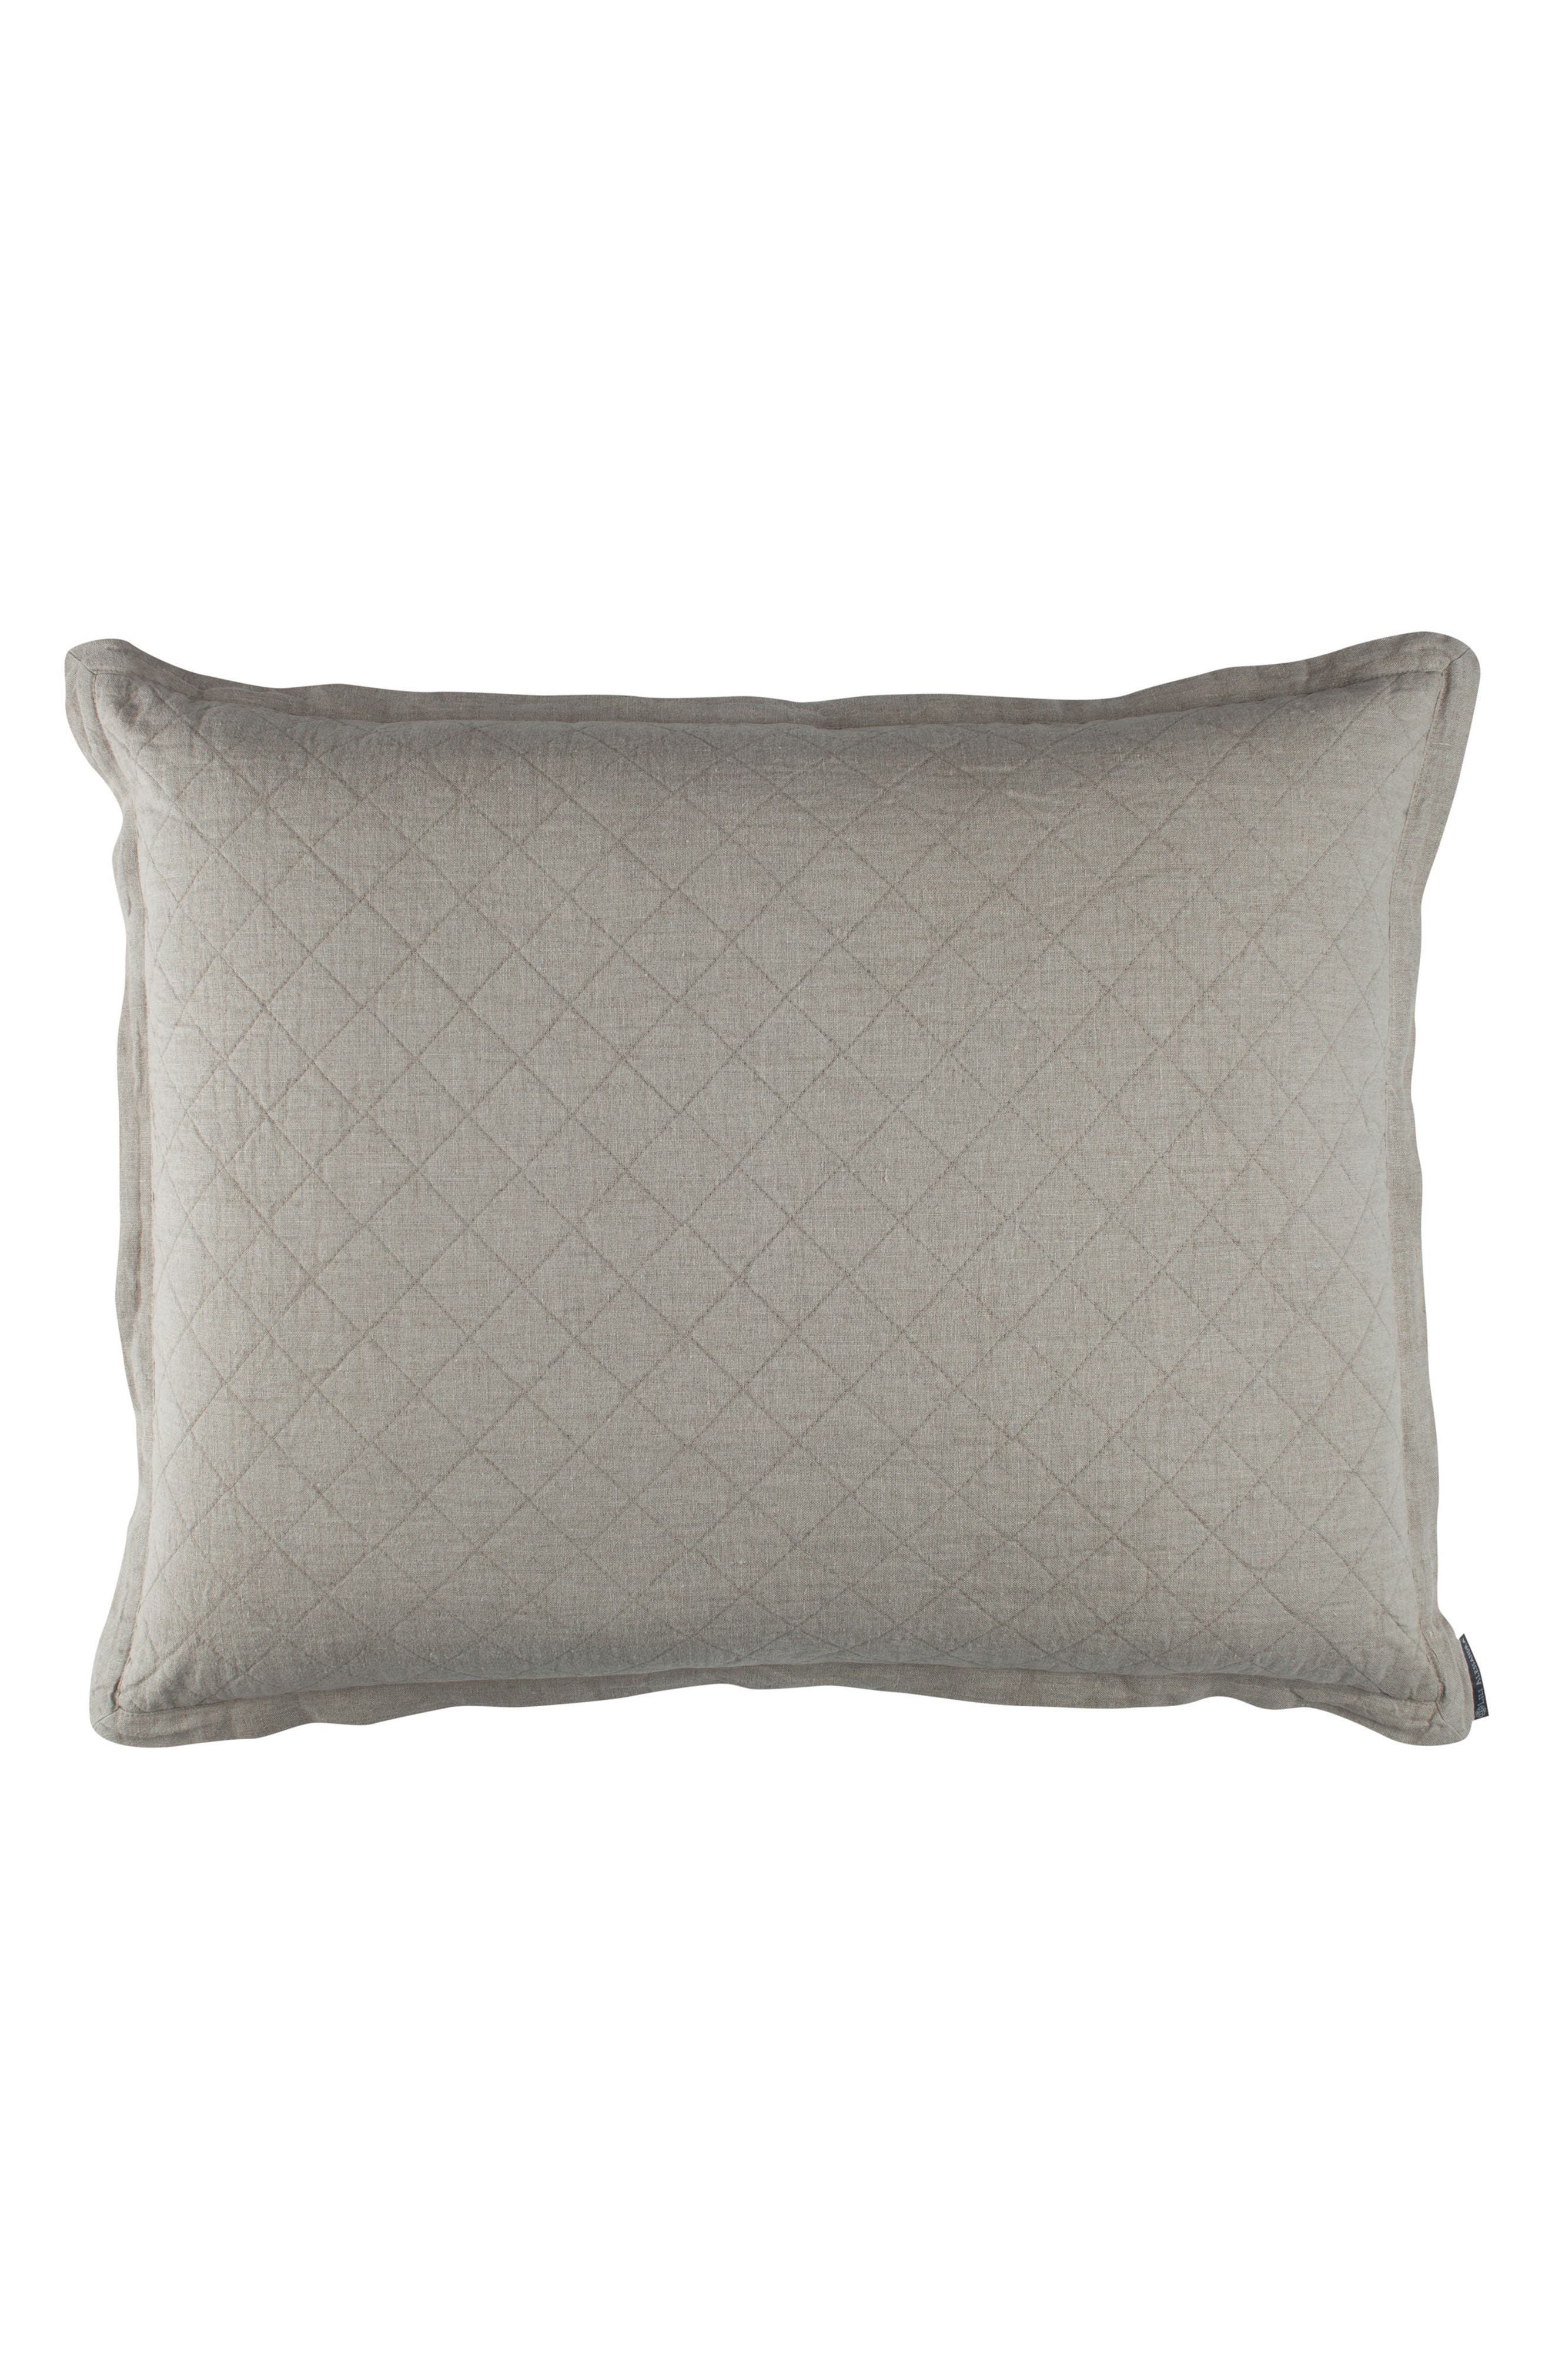 Emily Diamond Quilted Sham,                         Main,                         color, 020